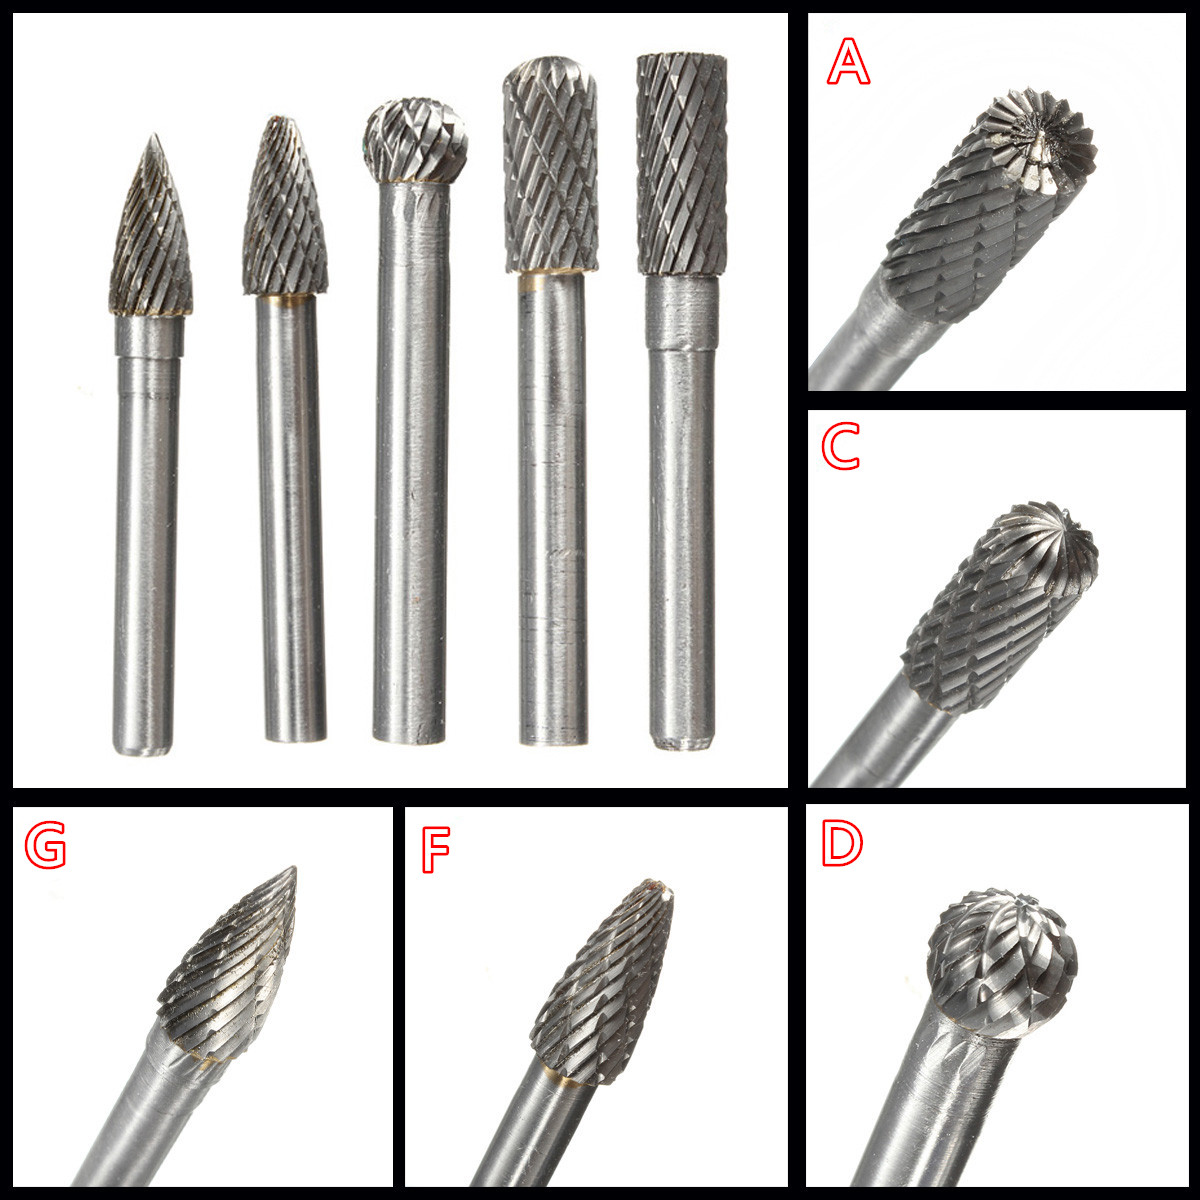 Newest 1PC 8MM Head Tungsten Carbide Rotary Tool Point Burr Die Grinder 6mm Shank Drill Carving Bit Abrasive Tools